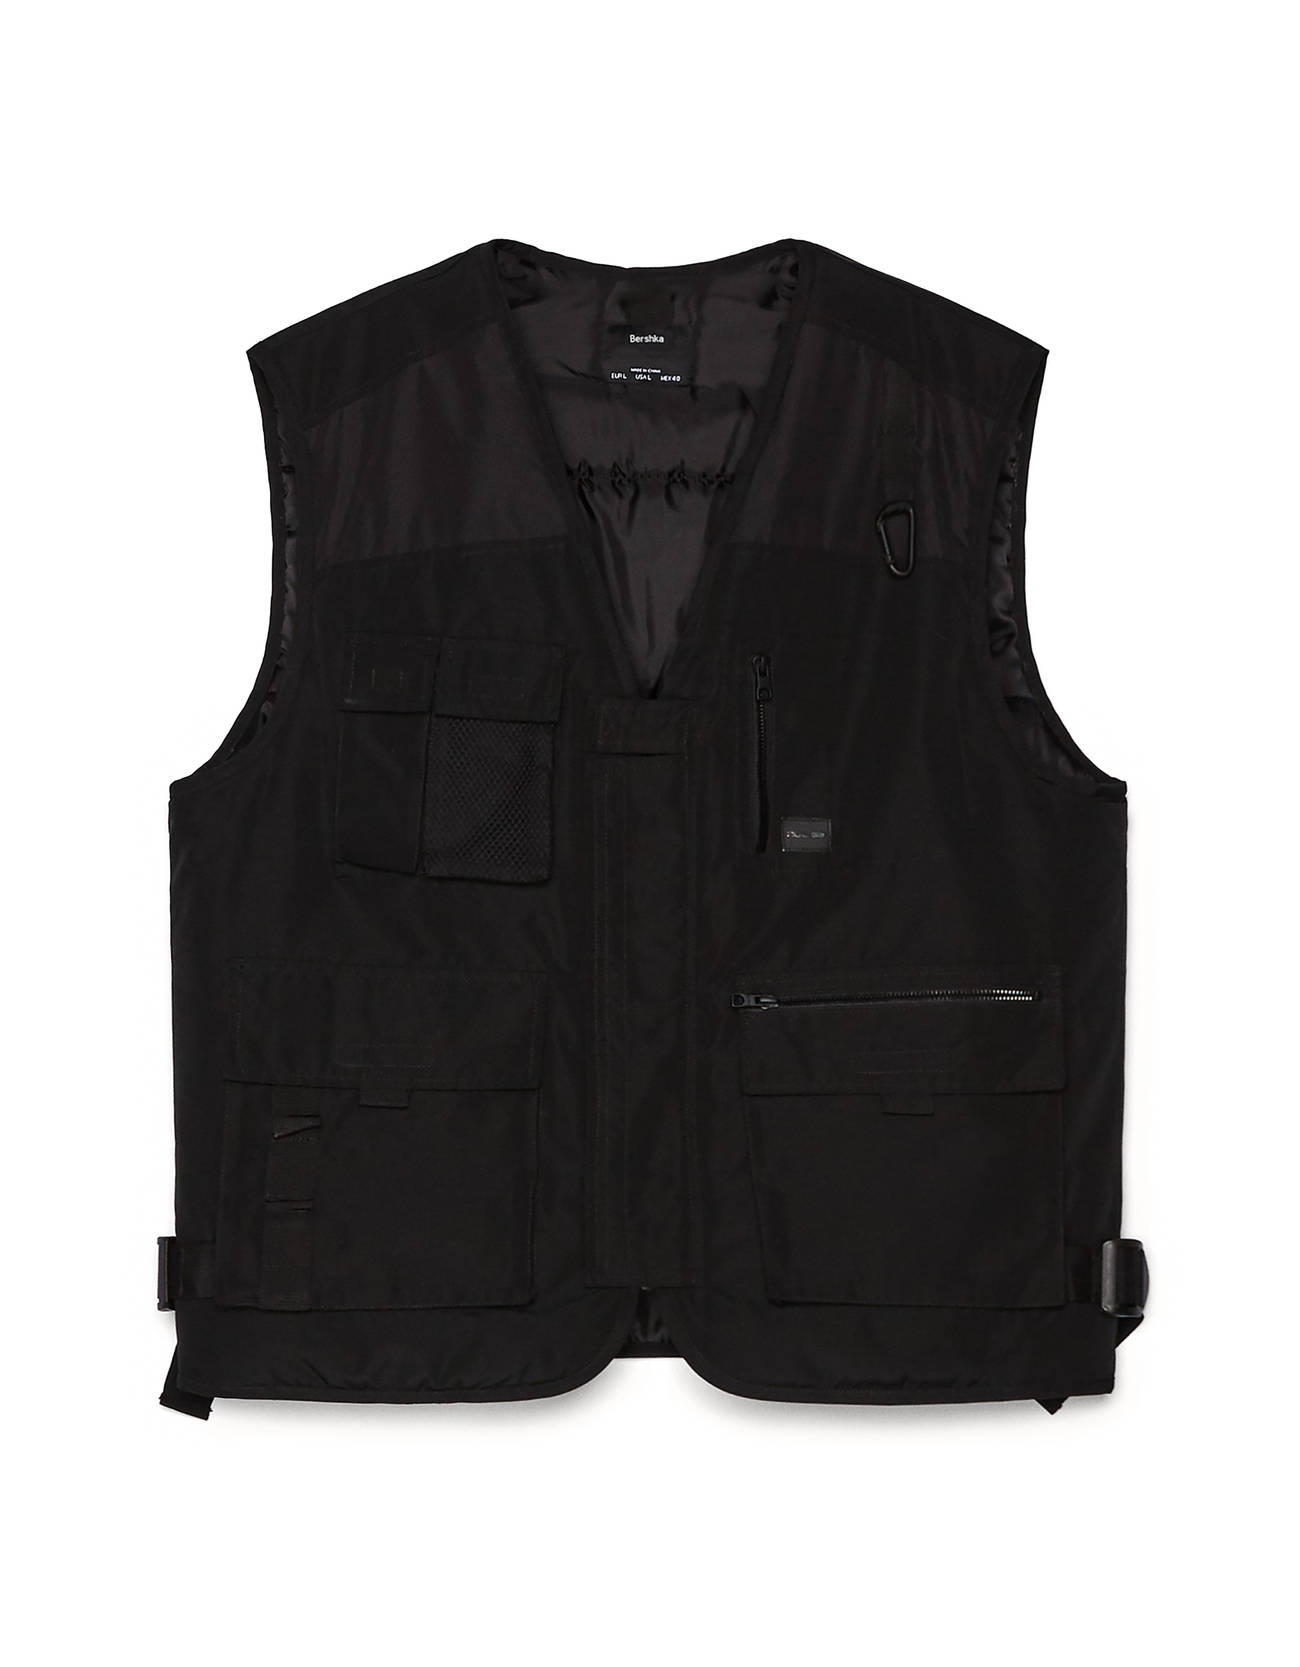 Padded vest with pockets